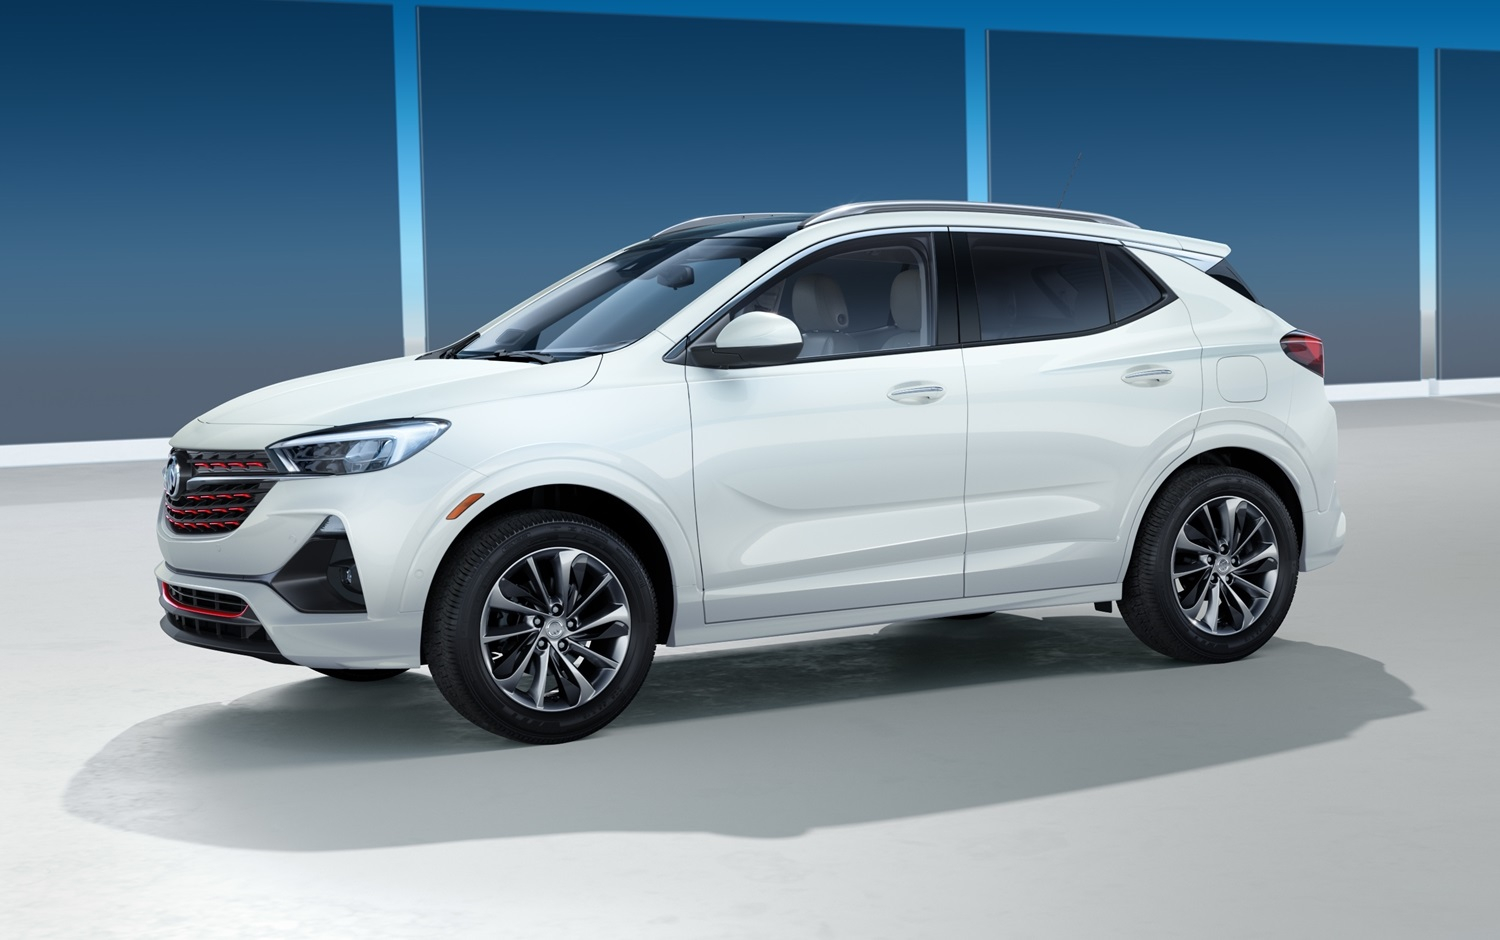 2021 Buick Encore Gx Info, Specs, Wiki | Gm Authority 2022 Buick Encore Gx Release Date, Interior, Brochure